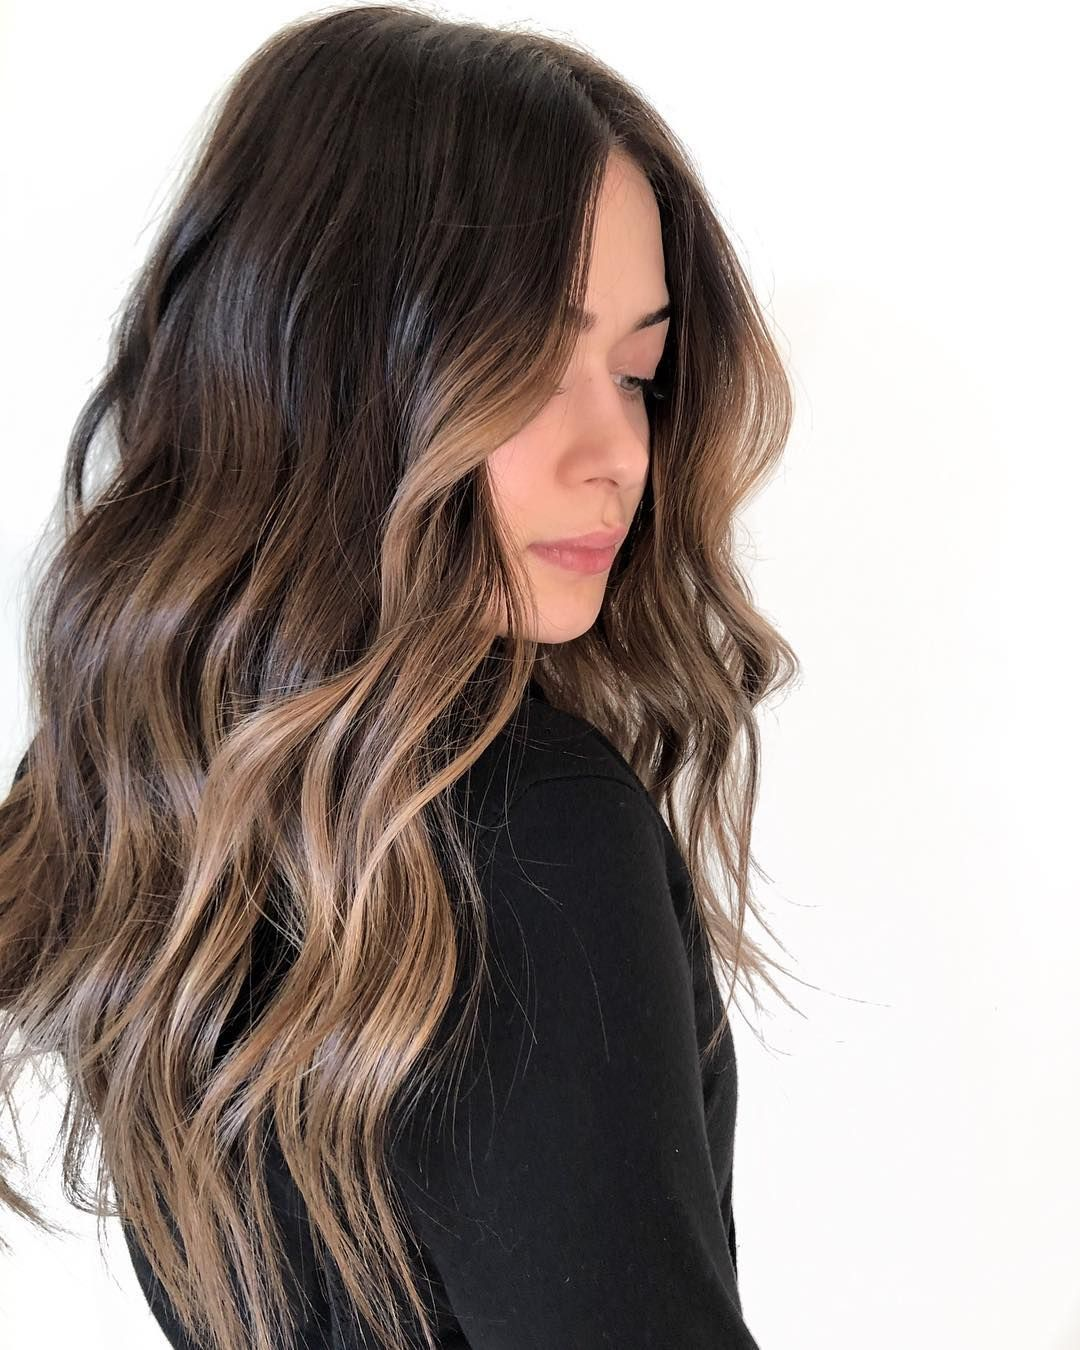 """⠀⠀ X O . F A R H A N A on Instagram: """"""""Make me darker but I'll probably want to lighten it up again in the summer"""" —> REVERSE BALAYAGE using my go-to @redken Shades EQ which…"""""""